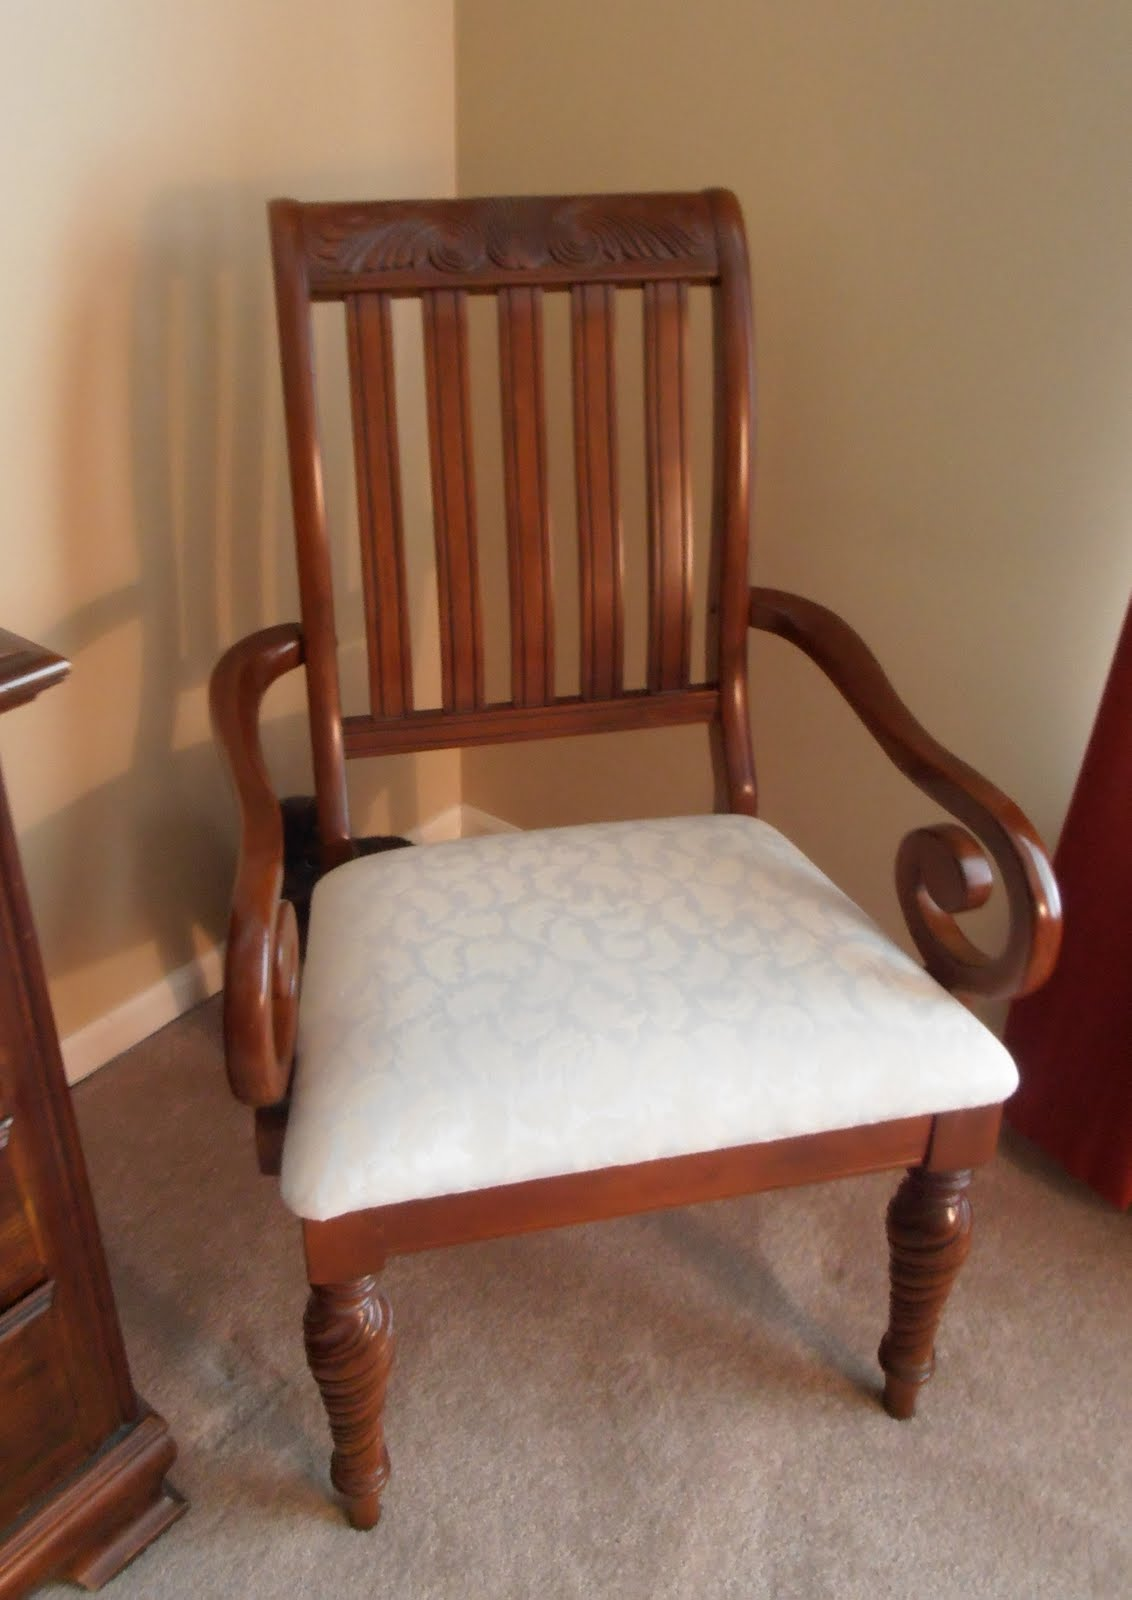 Chair Seat Cover Chair Seat Covers Cheapest Way To Reorganize Home This